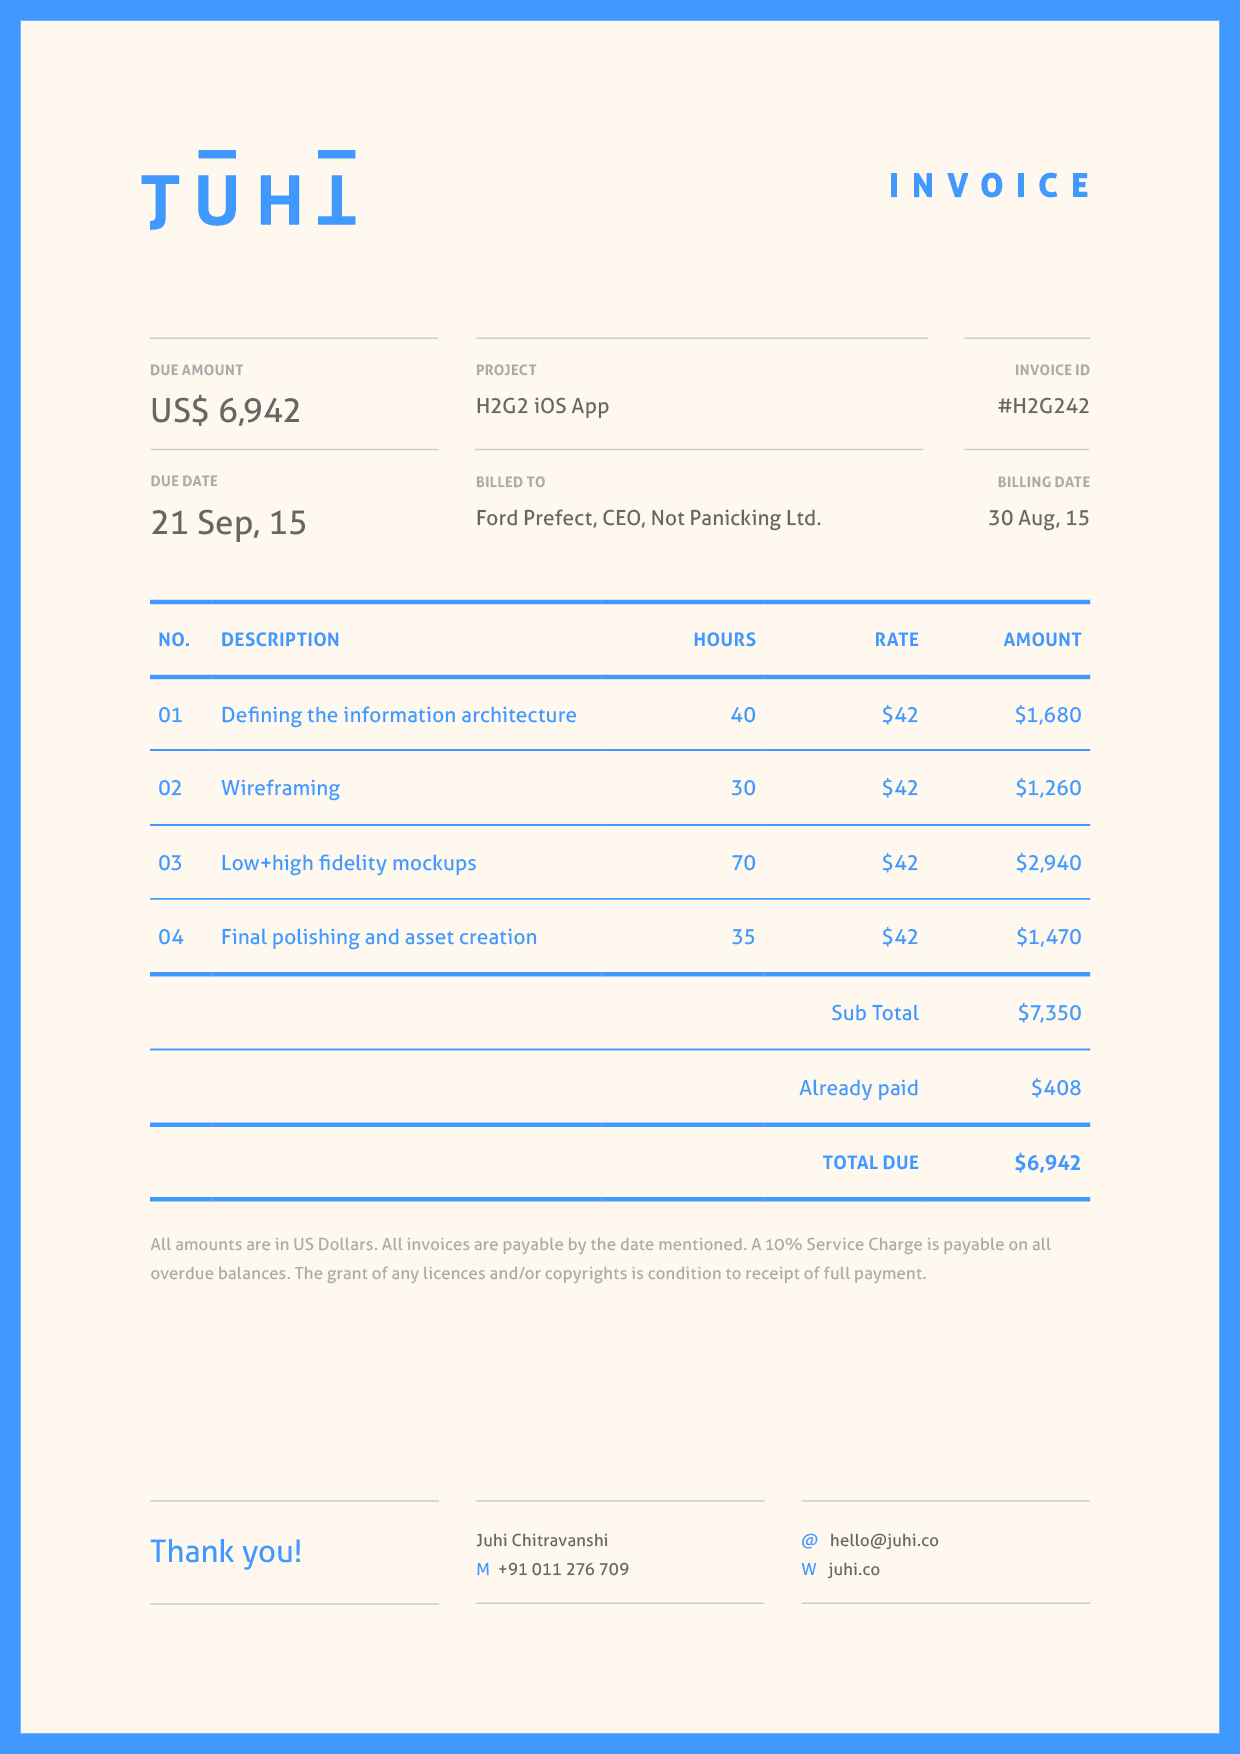 Coachoutletonlineplusus  Remarkable Dont Hold Back On Your Invoice  Inspiring Designs  With Glamorous Invoice By Juhi Chitravanshi Follow With Nice Invoice Sheet Also Invoice Template Open Office In Addition Downloadable Invoice Template And Invoice By Wave As Well As Invoice Price For Cars Additionally Purchase Order Vs Invoice From Inspirationfeedcom With Coachoutletonlineplusus  Glamorous Dont Hold Back On Your Invoice  Inspiring Designs  With Nice Invoice By Juhi Chitravanshi Follow And Remarkable Invoice Sheet Also Invoice Template Open Office In Addition Downloadable Invoice Template From Inspirationfeedcom